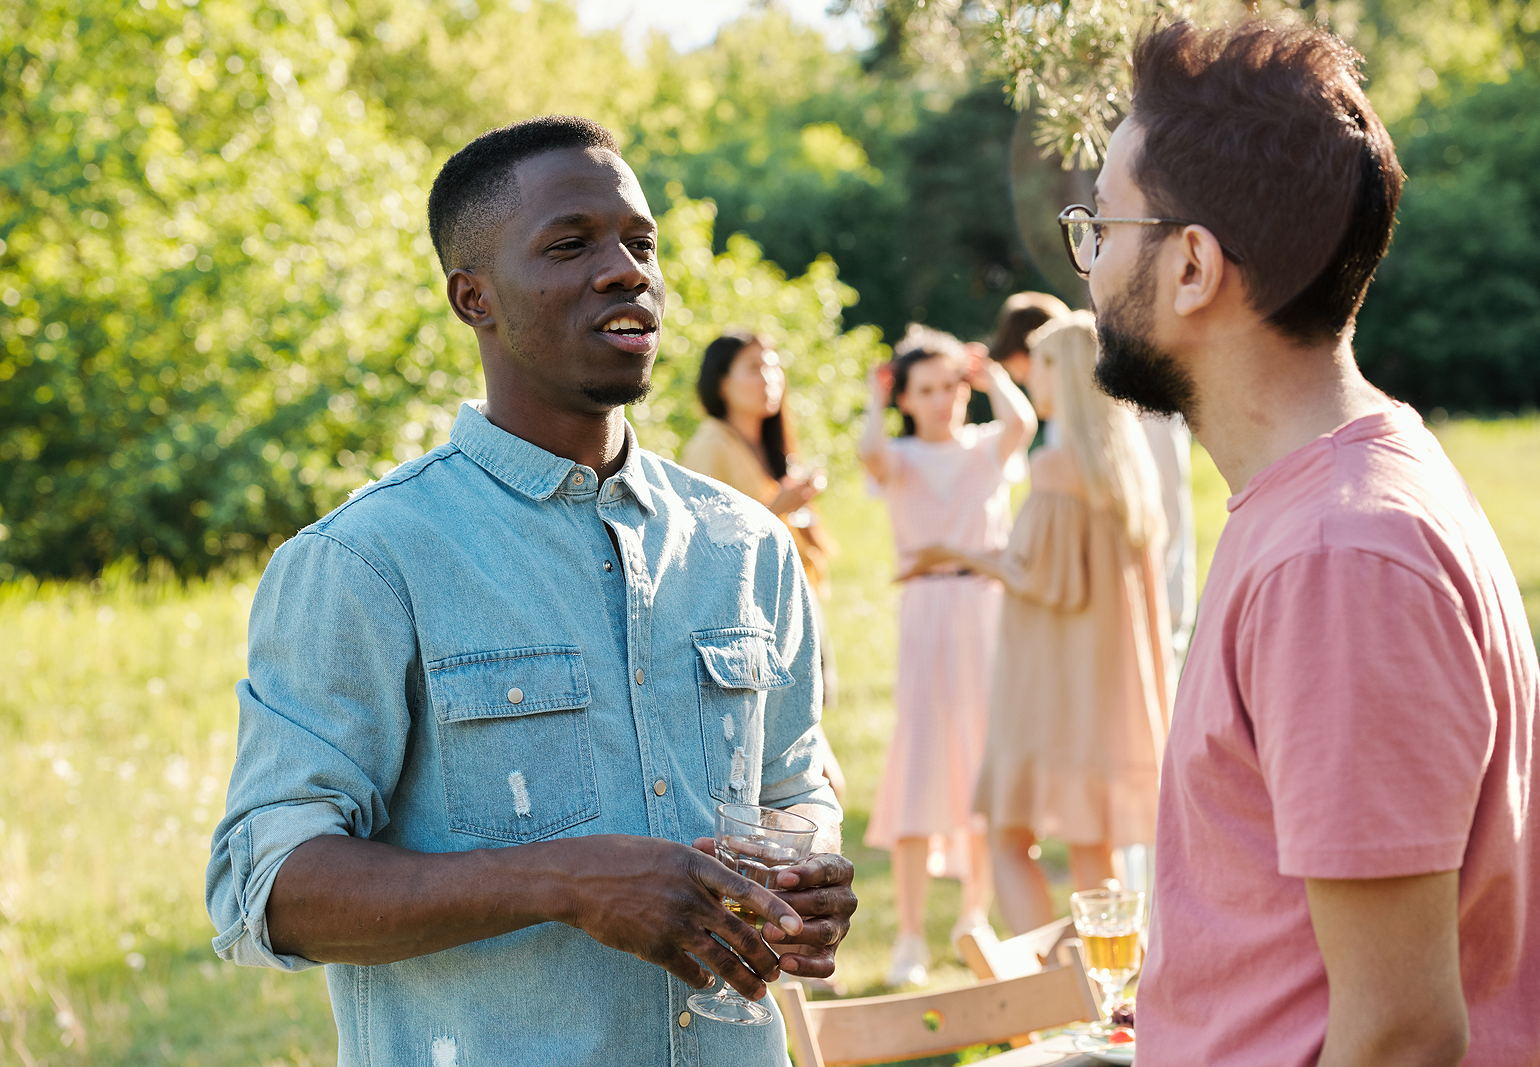 Photo of a young black and white man with glasses talking to each other at a friend reunion with girl friends in the background it a park.